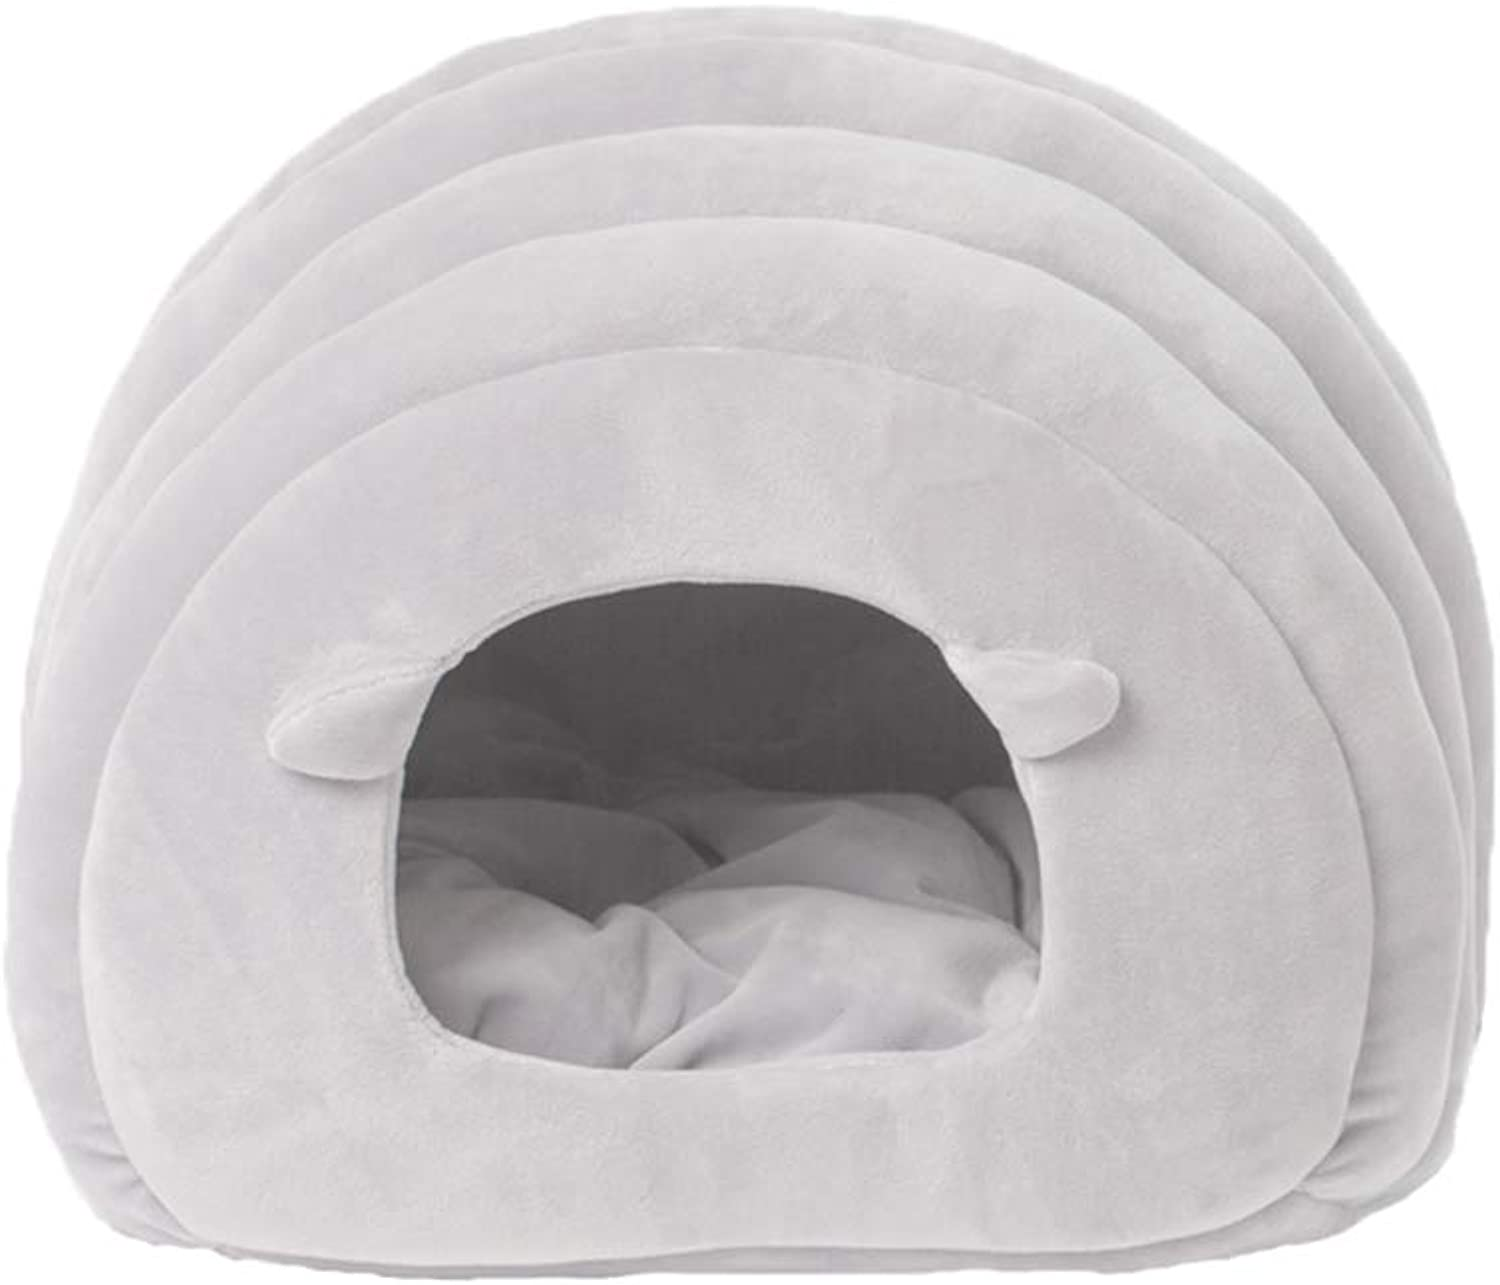 LIZHIQIANG Cat Bed, Inner Pad Washable Cat Nest, Pet Waterloo, SemiClosed Cat Sleeping Bag, Four Seasons Universal Keep Warm Cat and Dog Bed (2 Colours) (color   Light Grey)